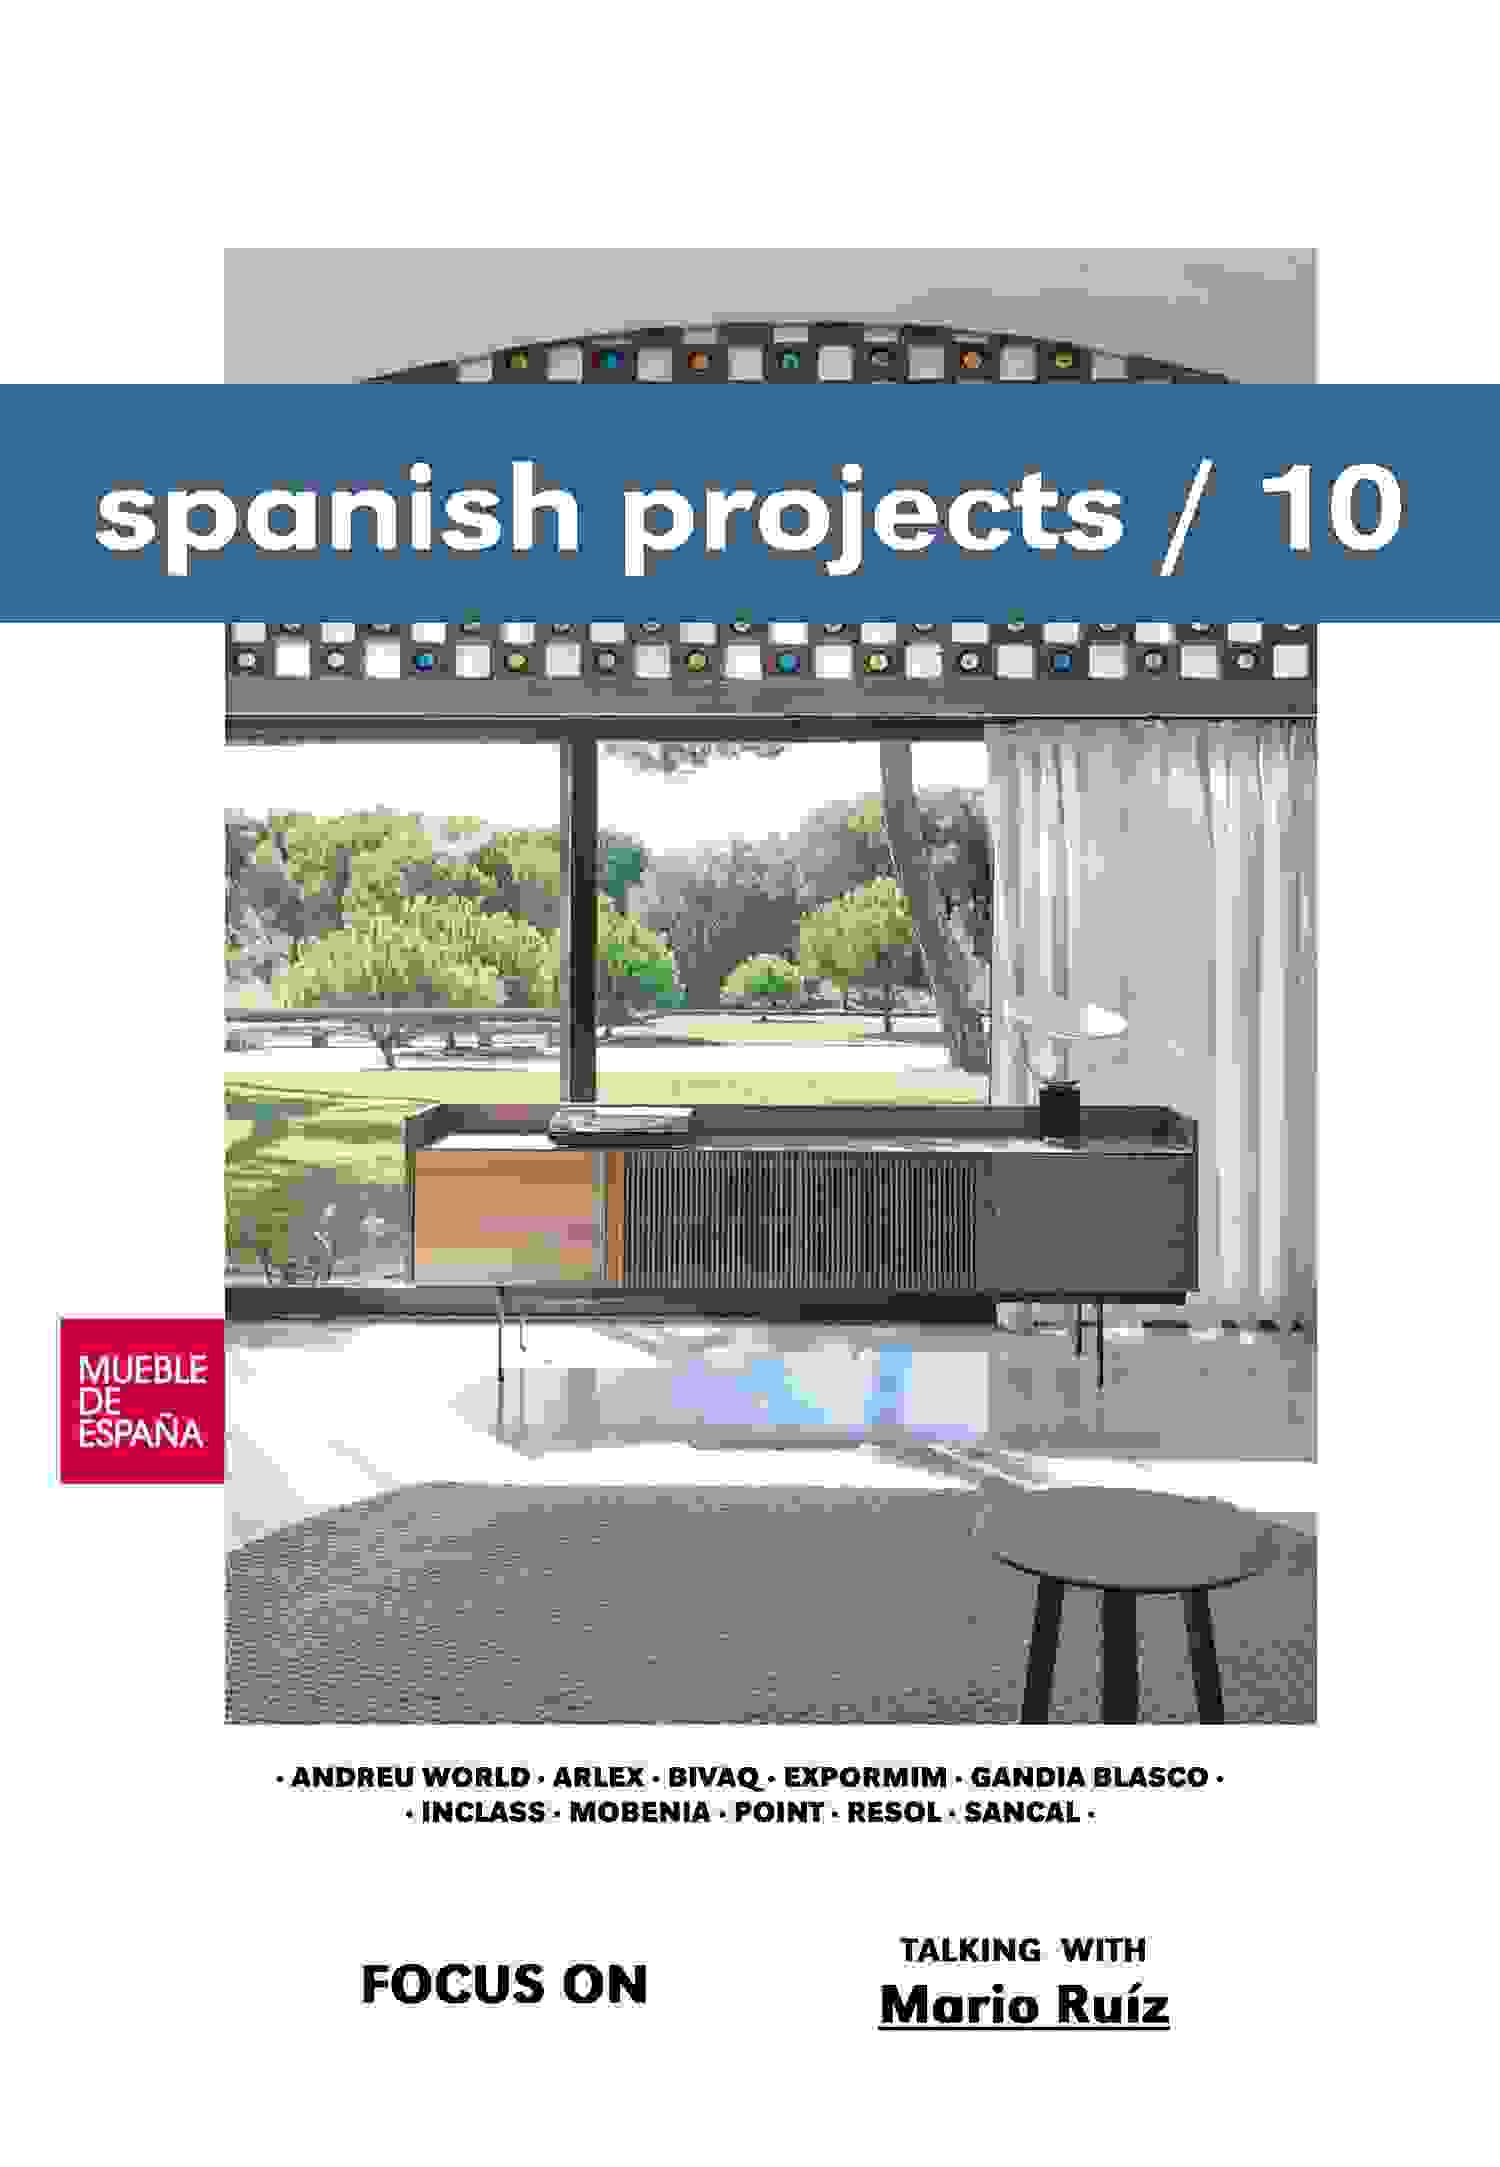 Spanish projects_10_portada_ESC.jpg